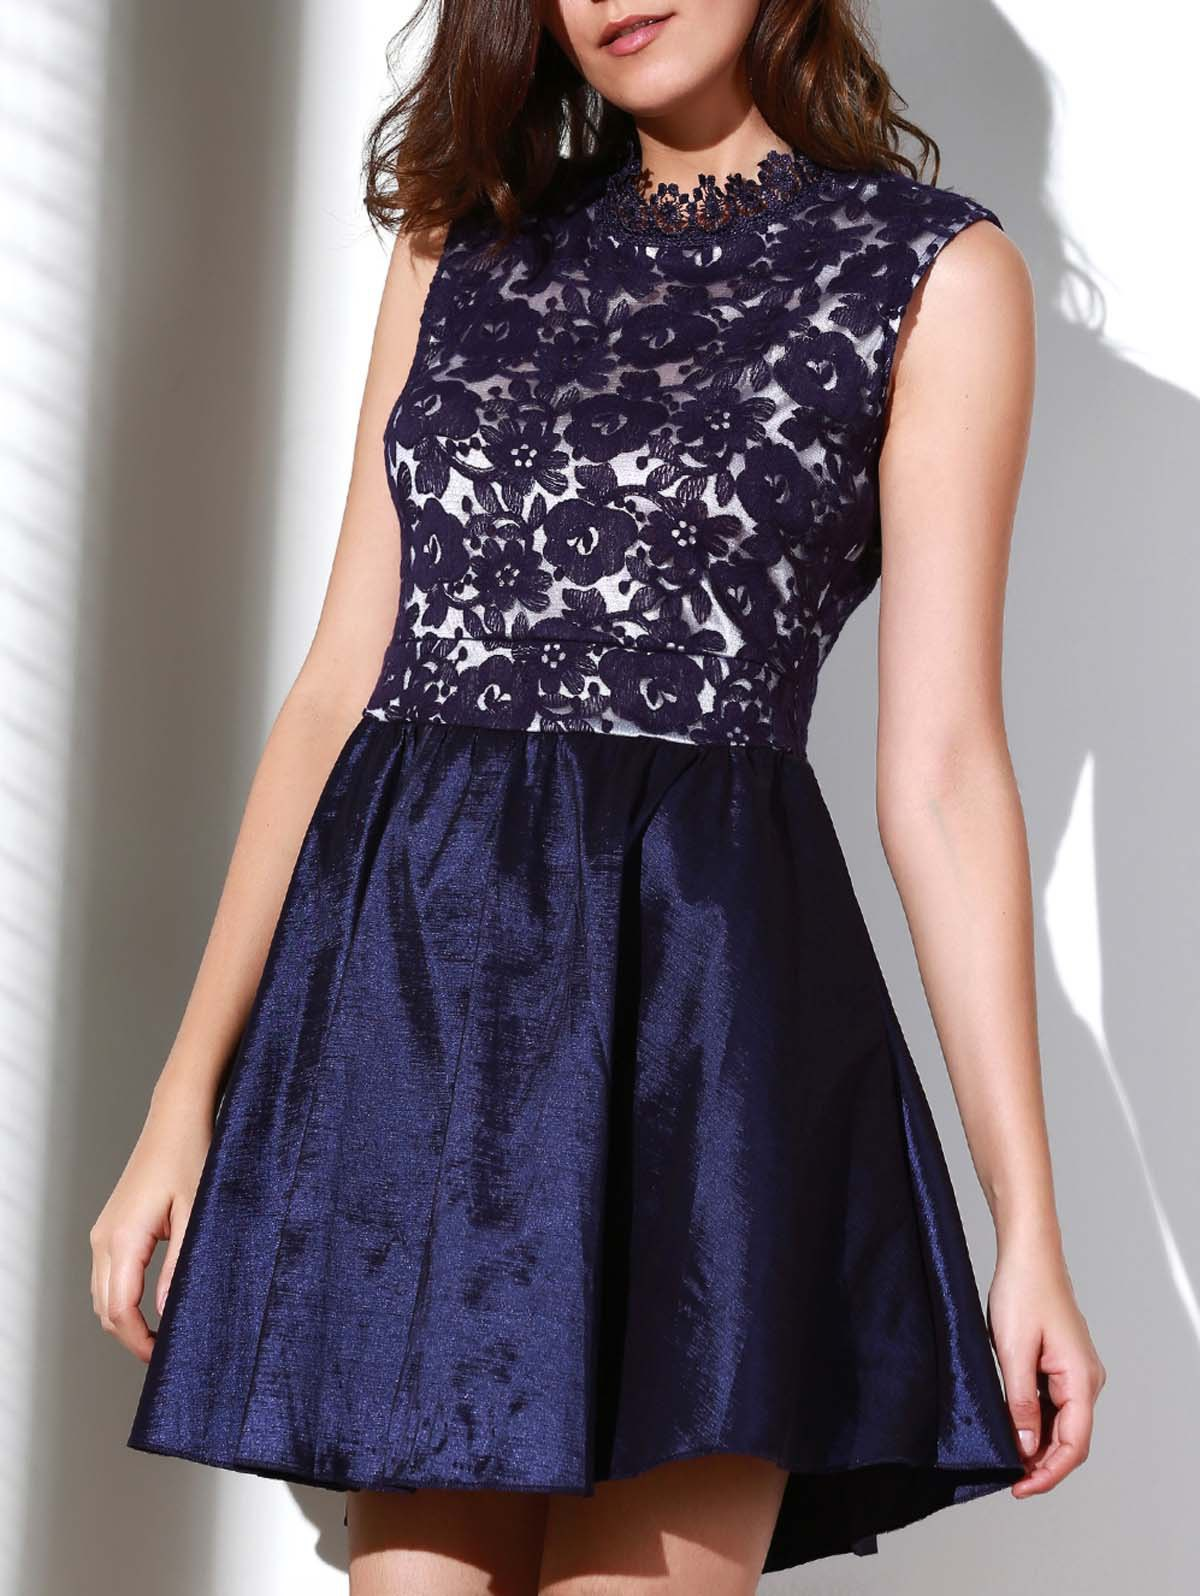 Noble Solid Color Stand Collar Hollow Out See-Through Ball Gown Dress For Women - PURPLISH BLUE S